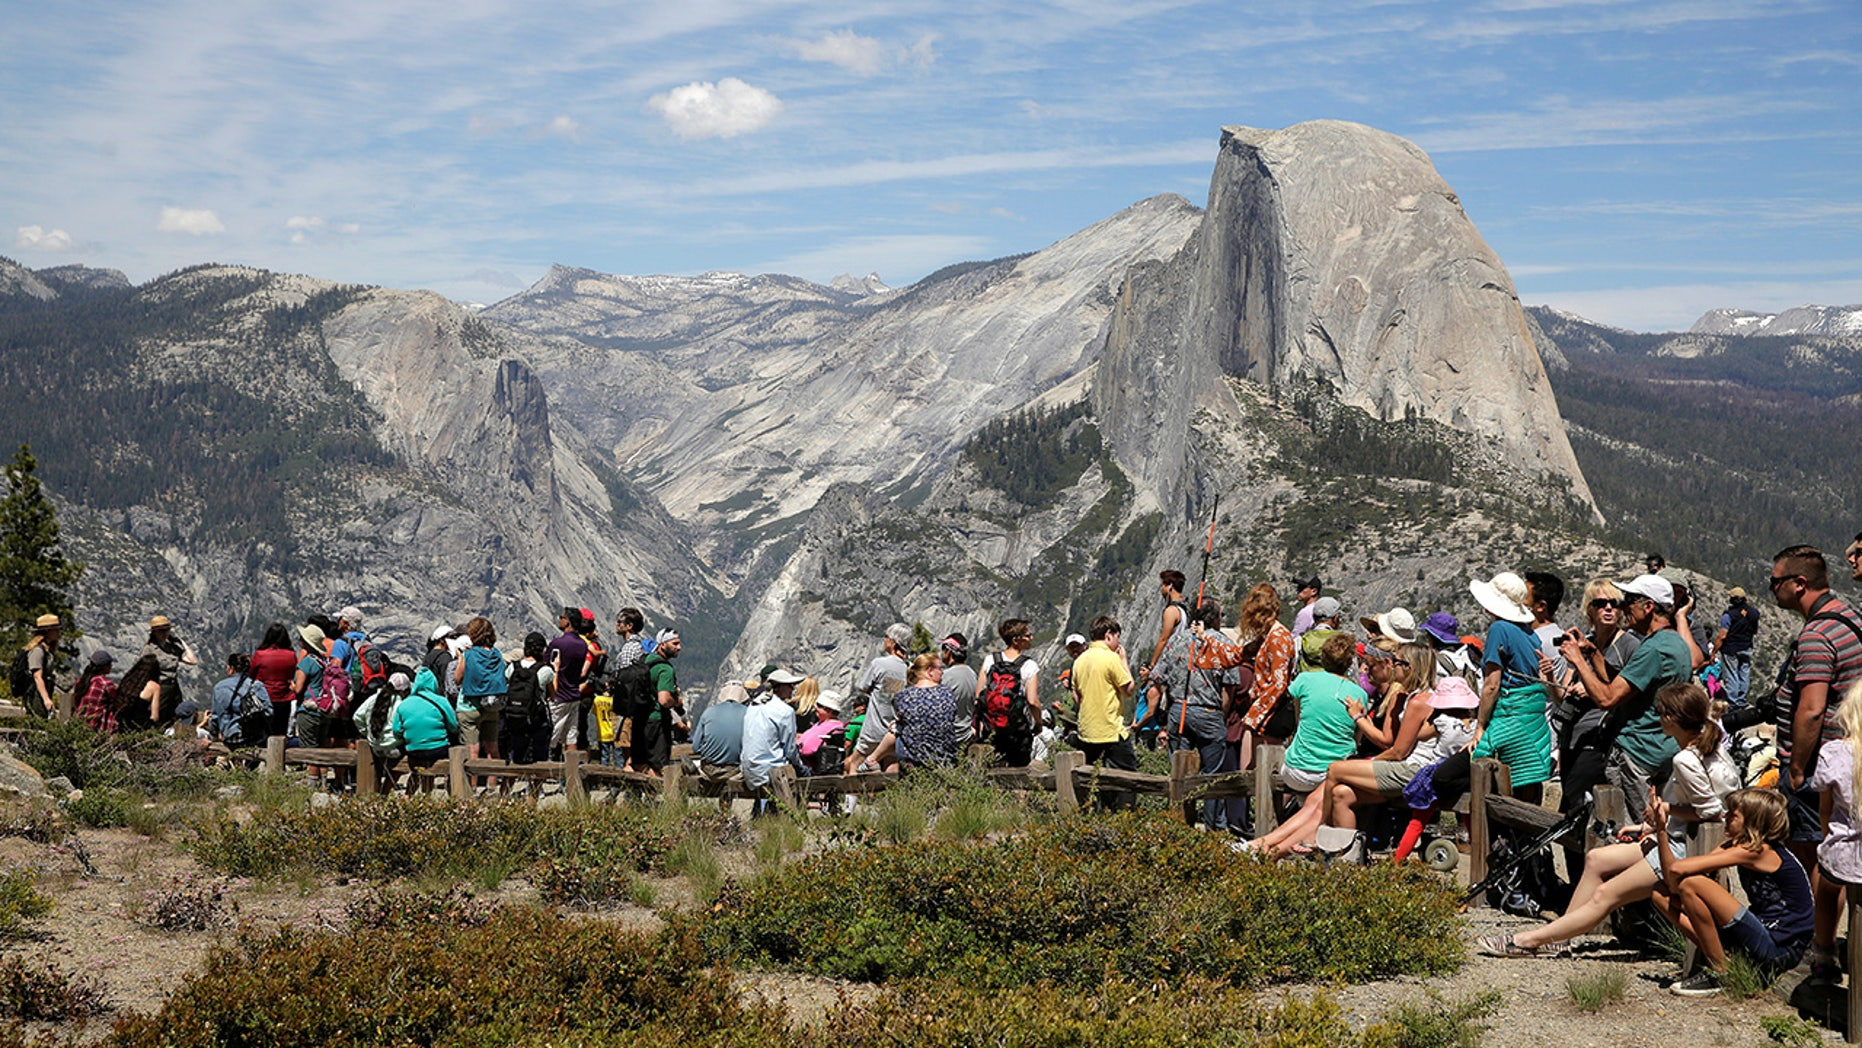 Nature lovers can enjoy free admission to parks that usually charge entry fees, like Yosemite.